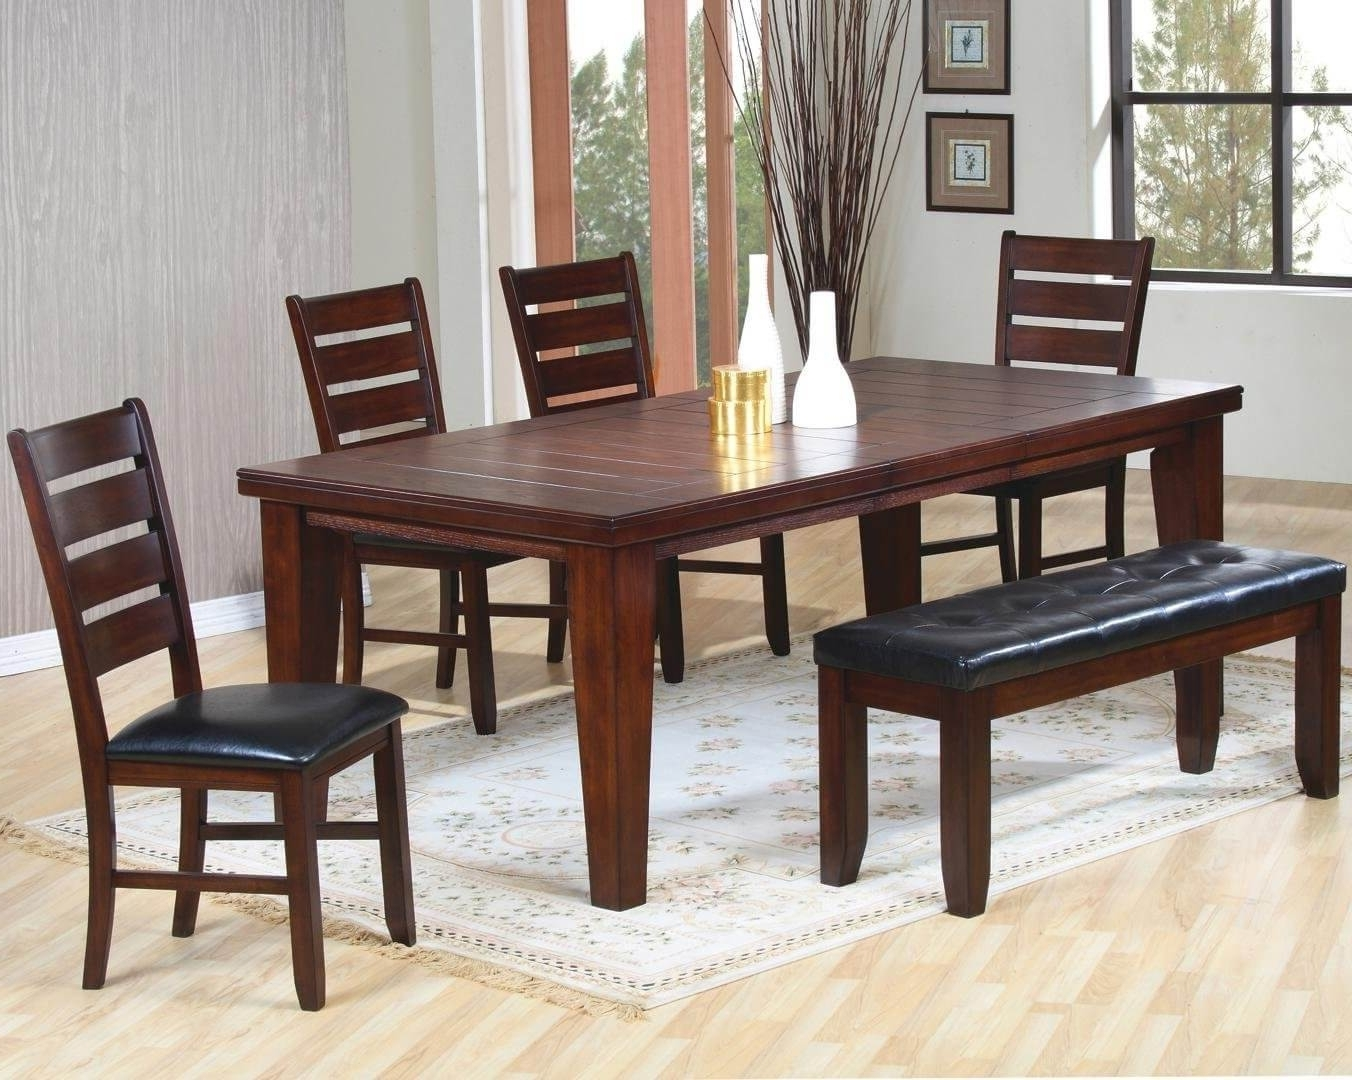 Most Recent Cheap Oak Dining Sets Inside 26 Dining Room Sets (Big And Small) With Bench Seating (2018) (View 16 of 25)